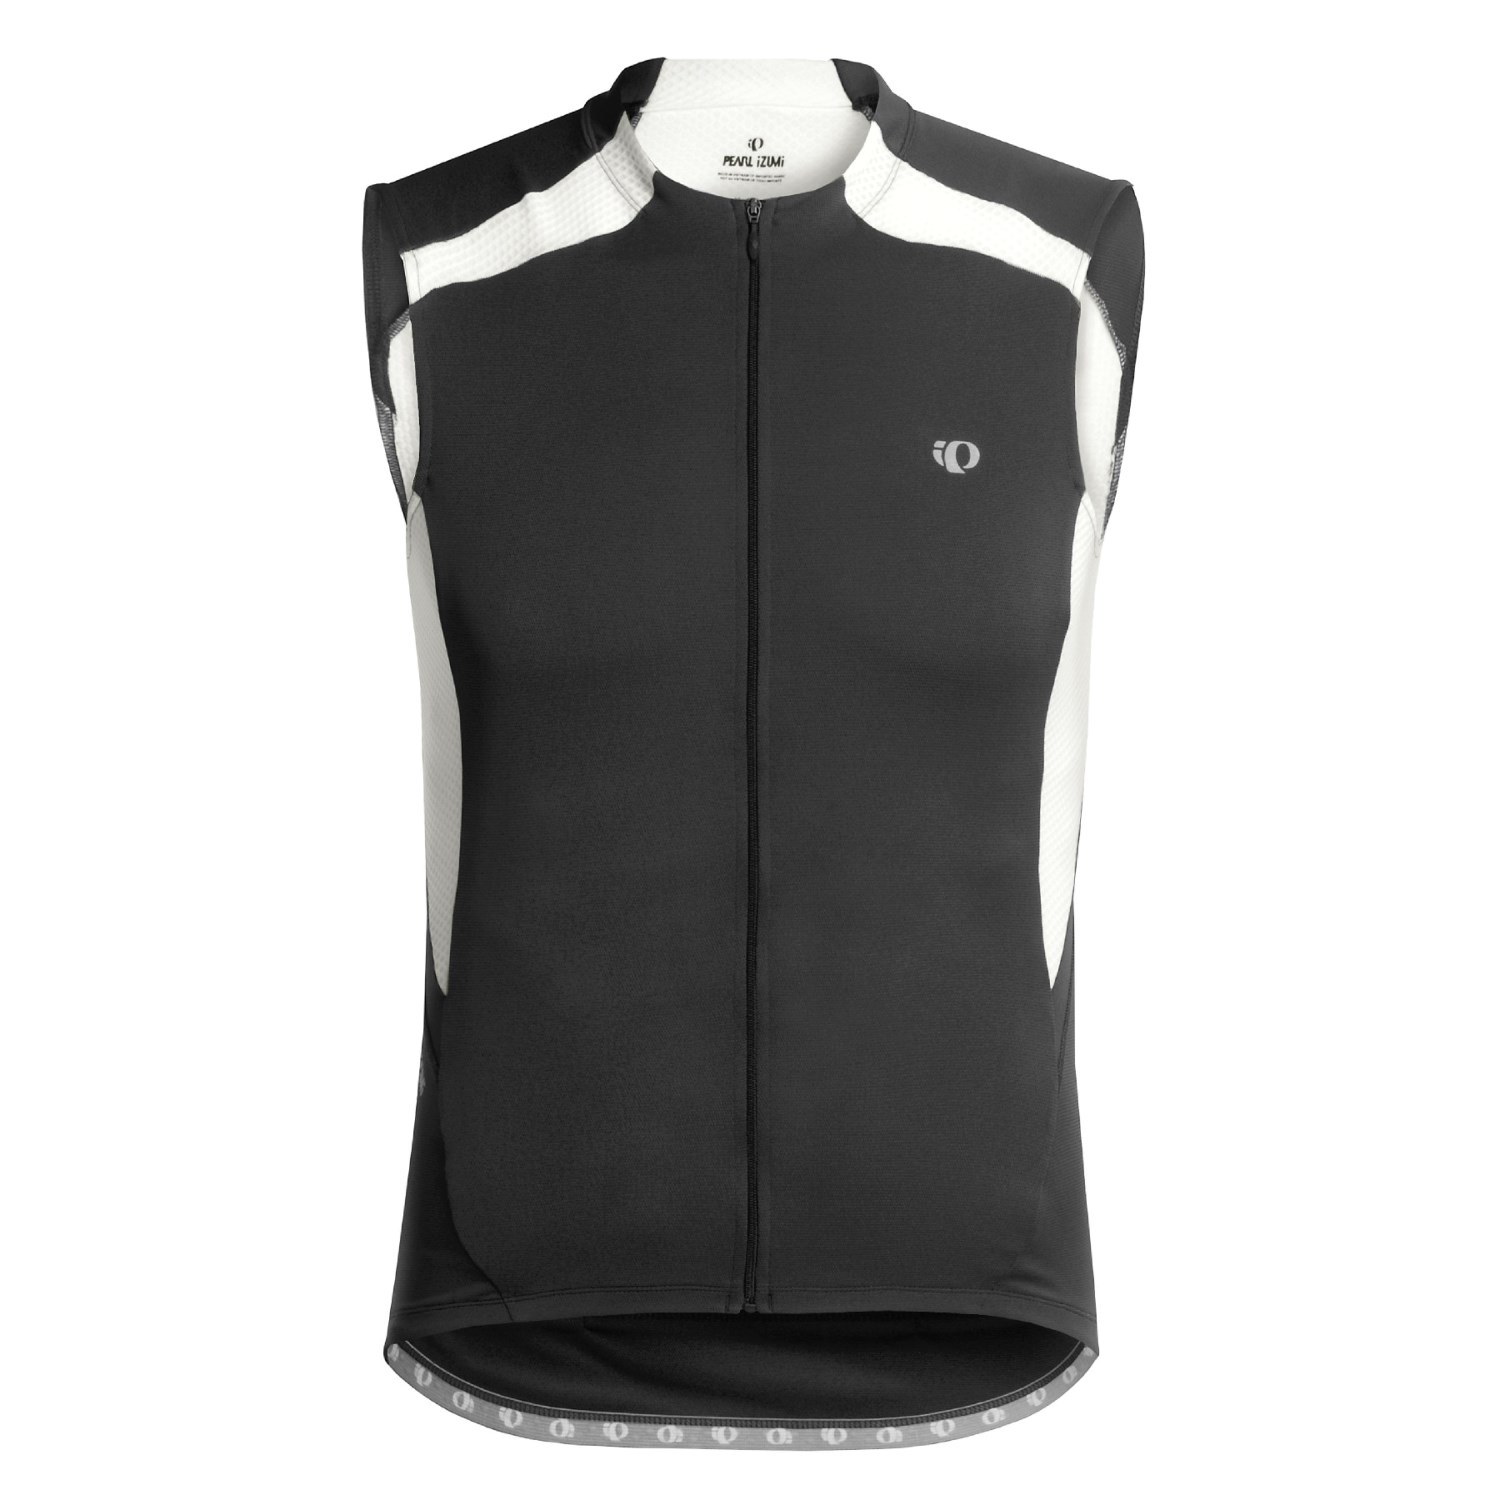 Pearl izumi p r o cycling jersey for men 2345t save 35 for Pearl izumi cycling shirt